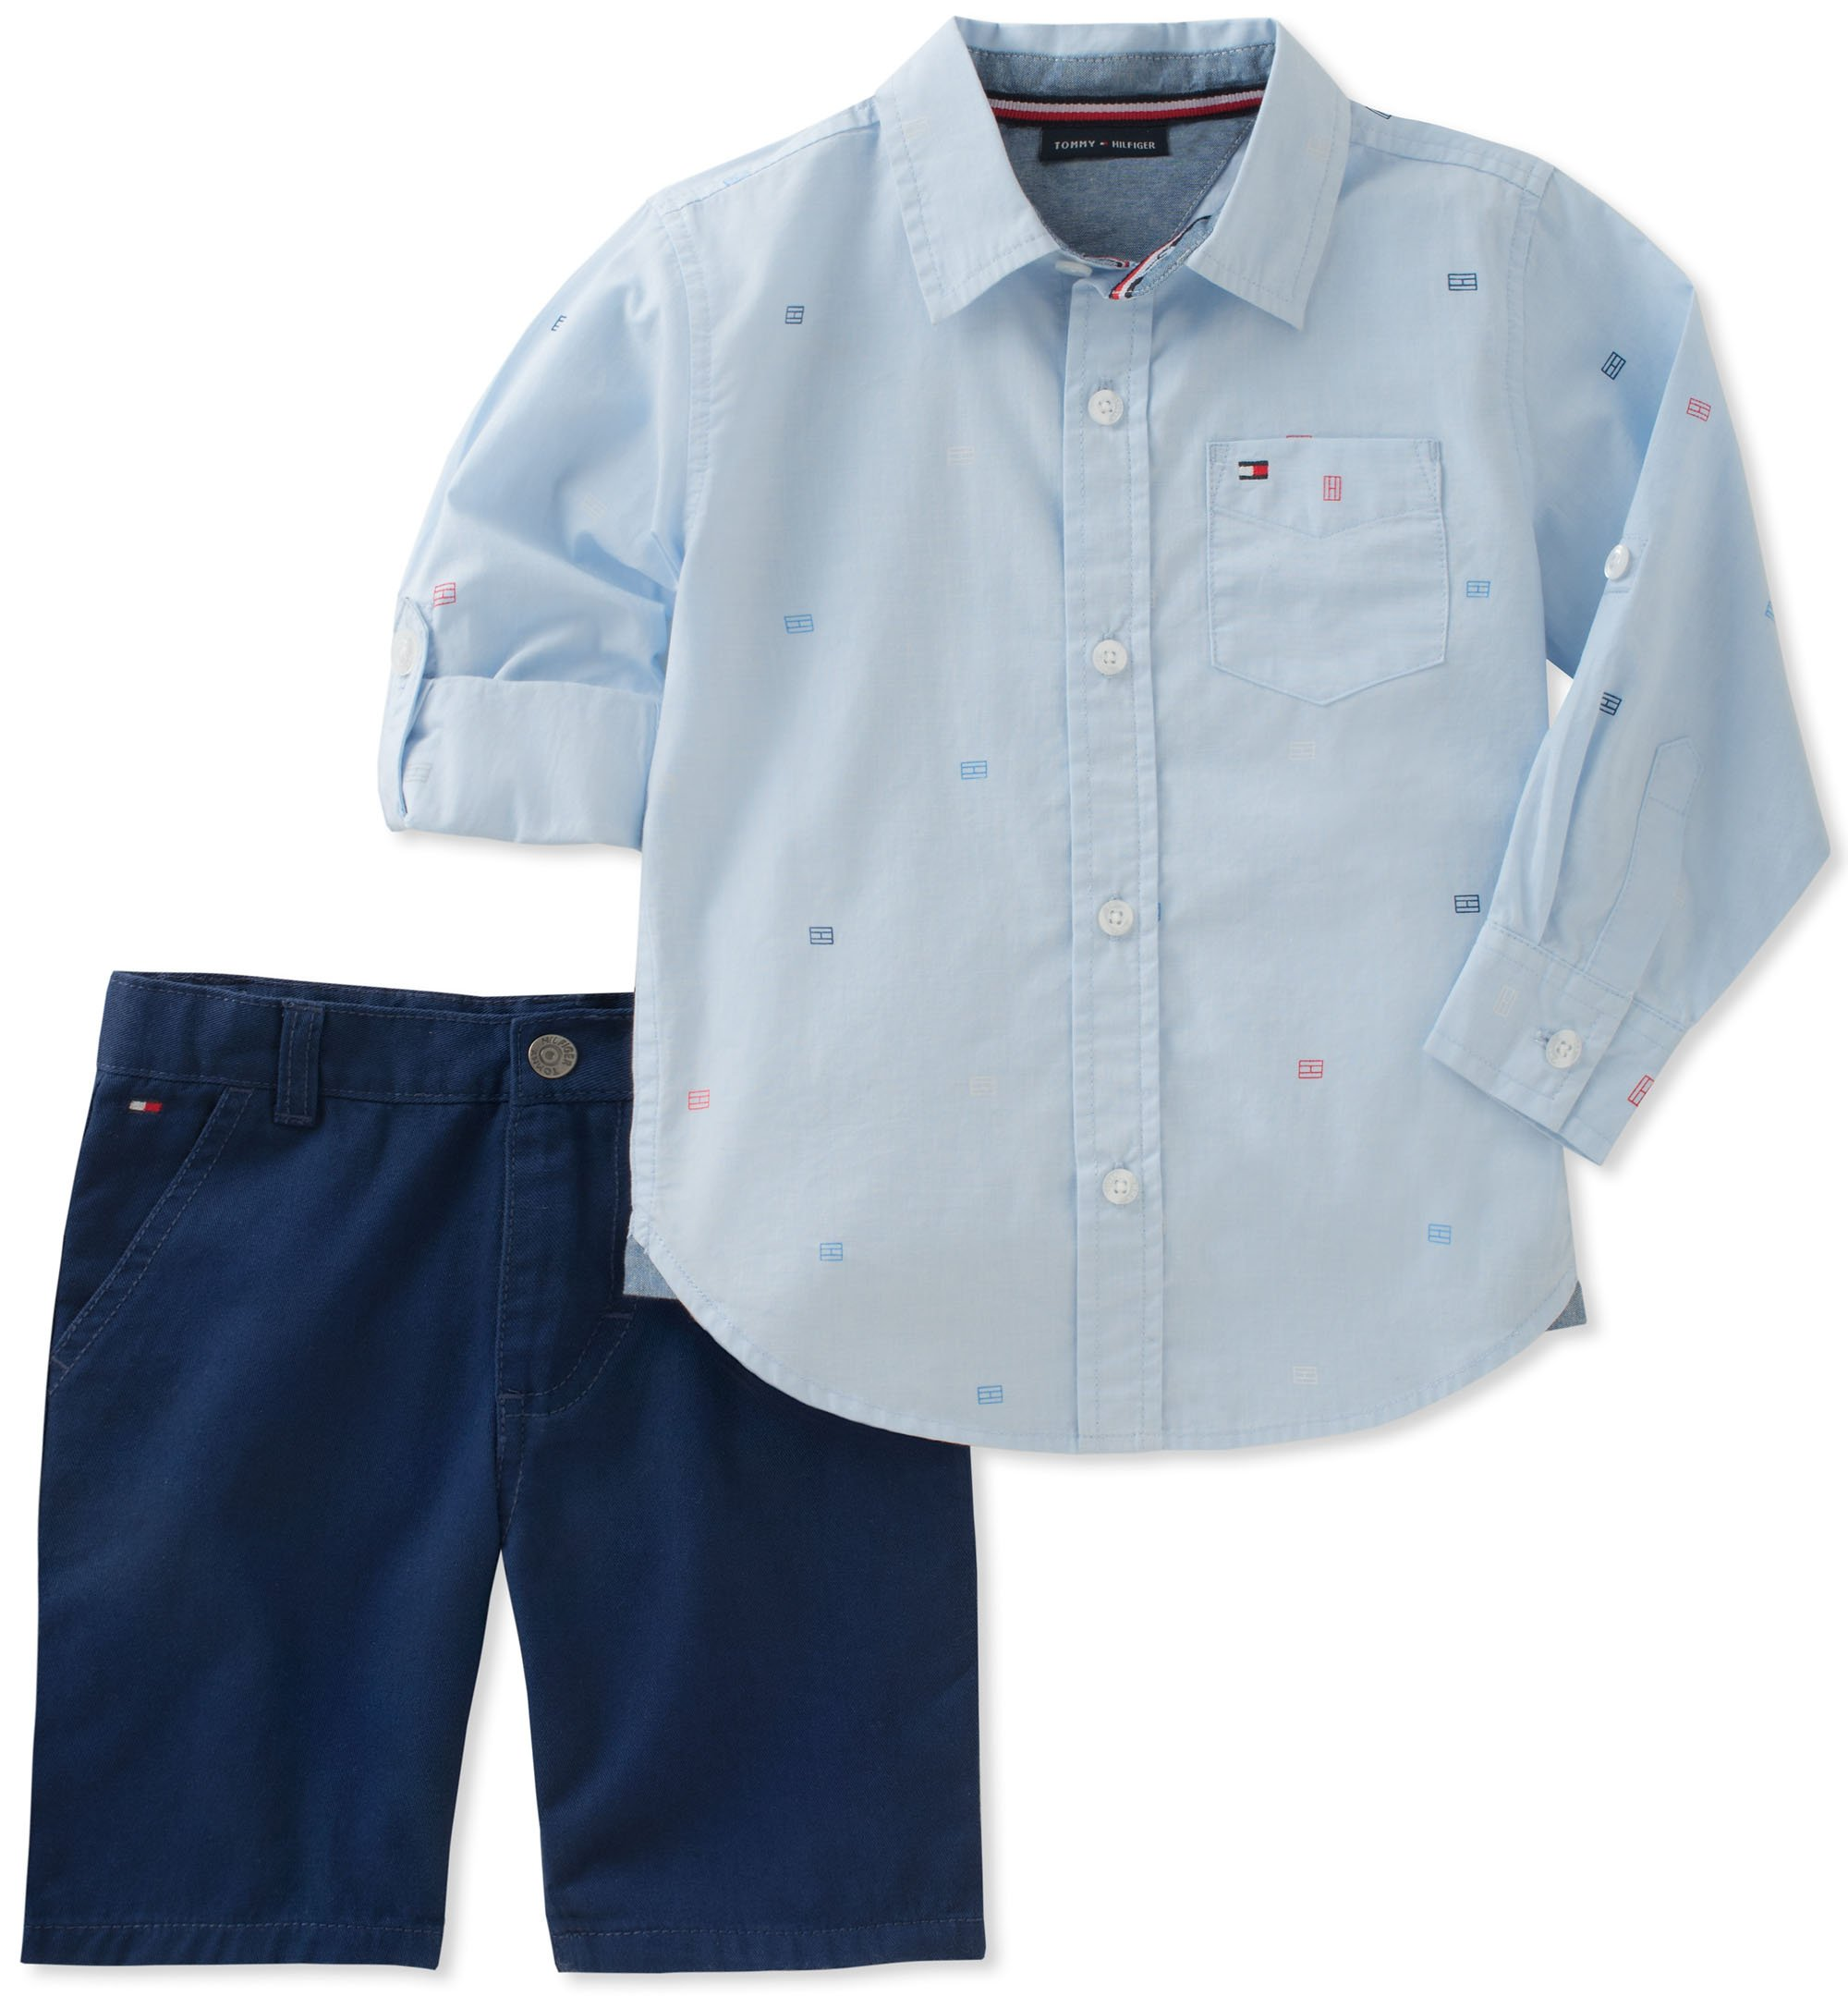 Tommy Hilfiger Boys' Toddler 2 Pieces Long Sleeves Shirt Shorts Set, Blue/Navy, 2T